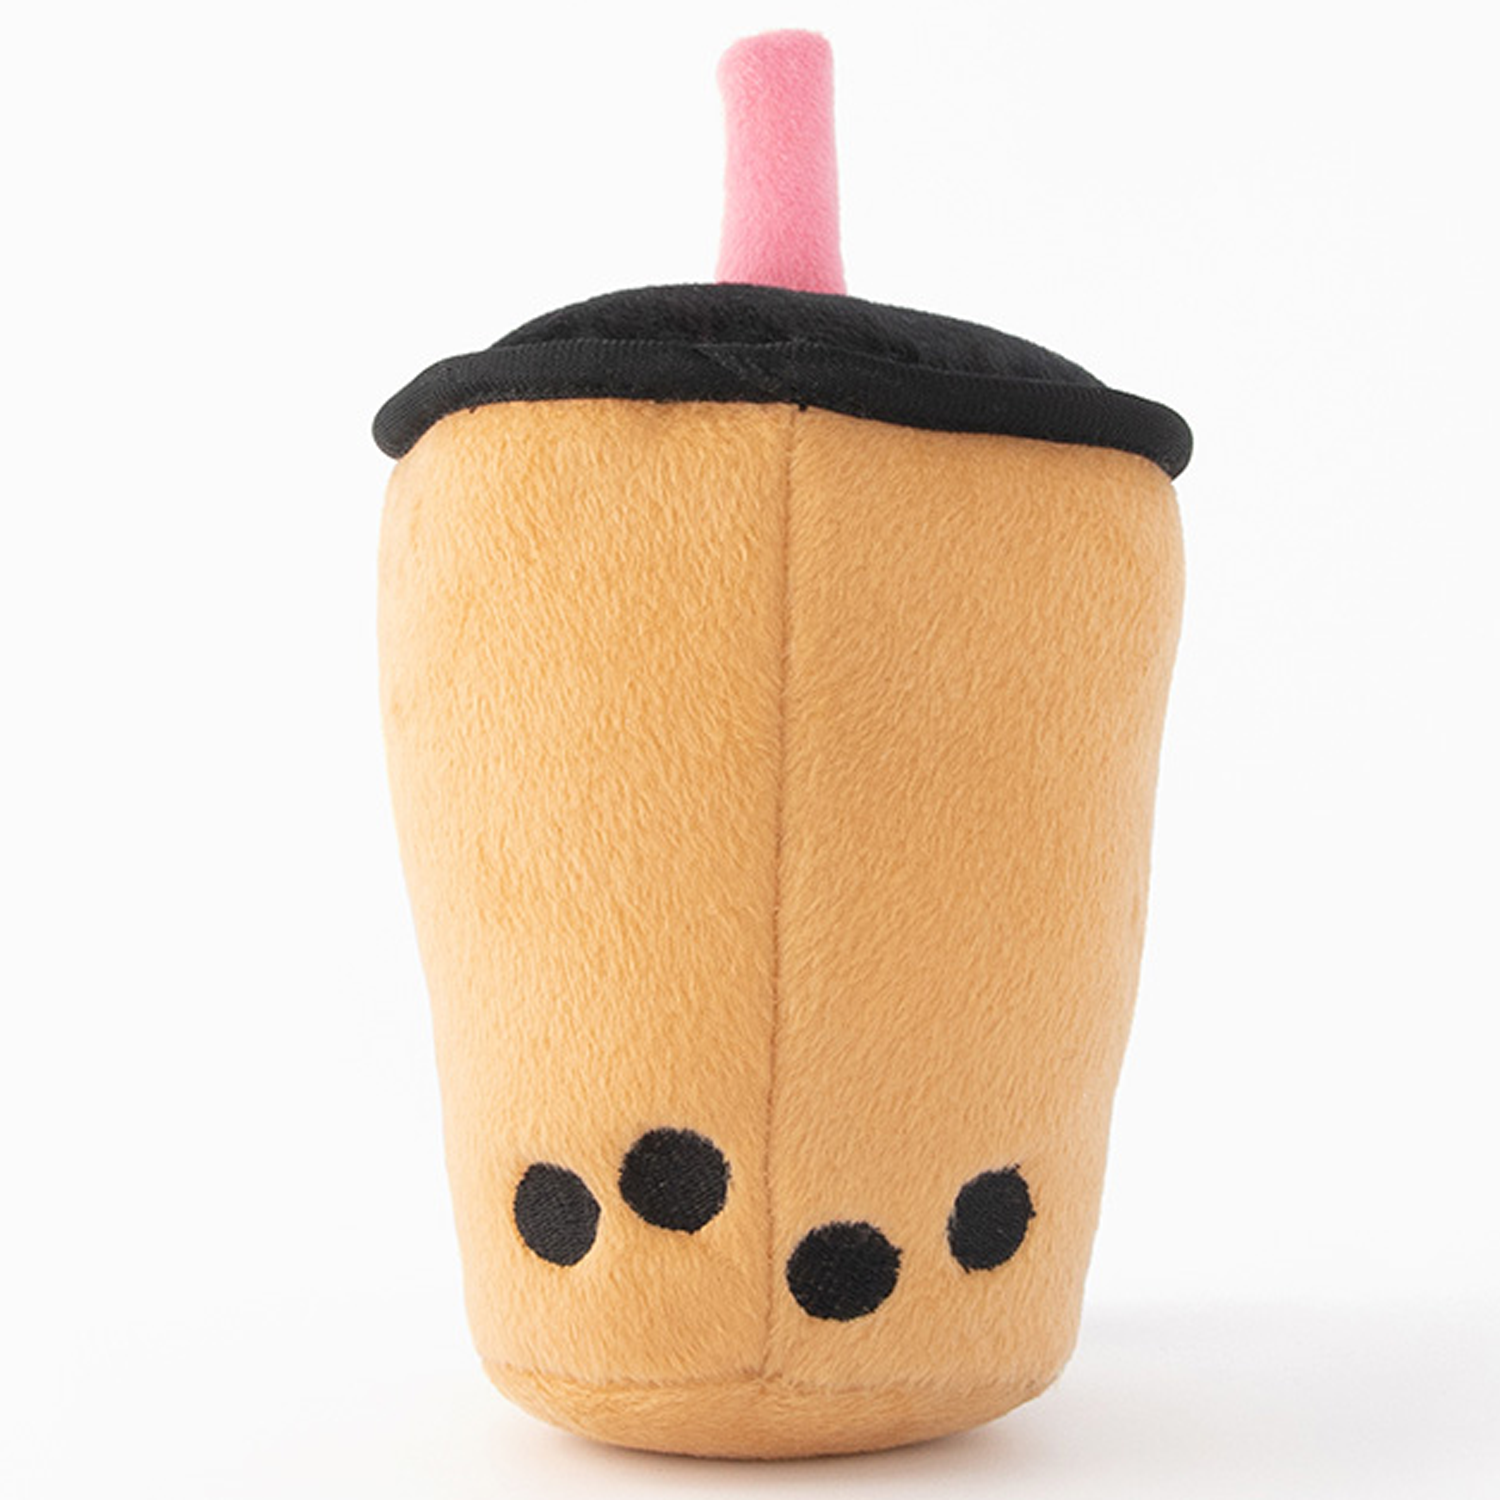 Boba Milk Tea Dog Toy